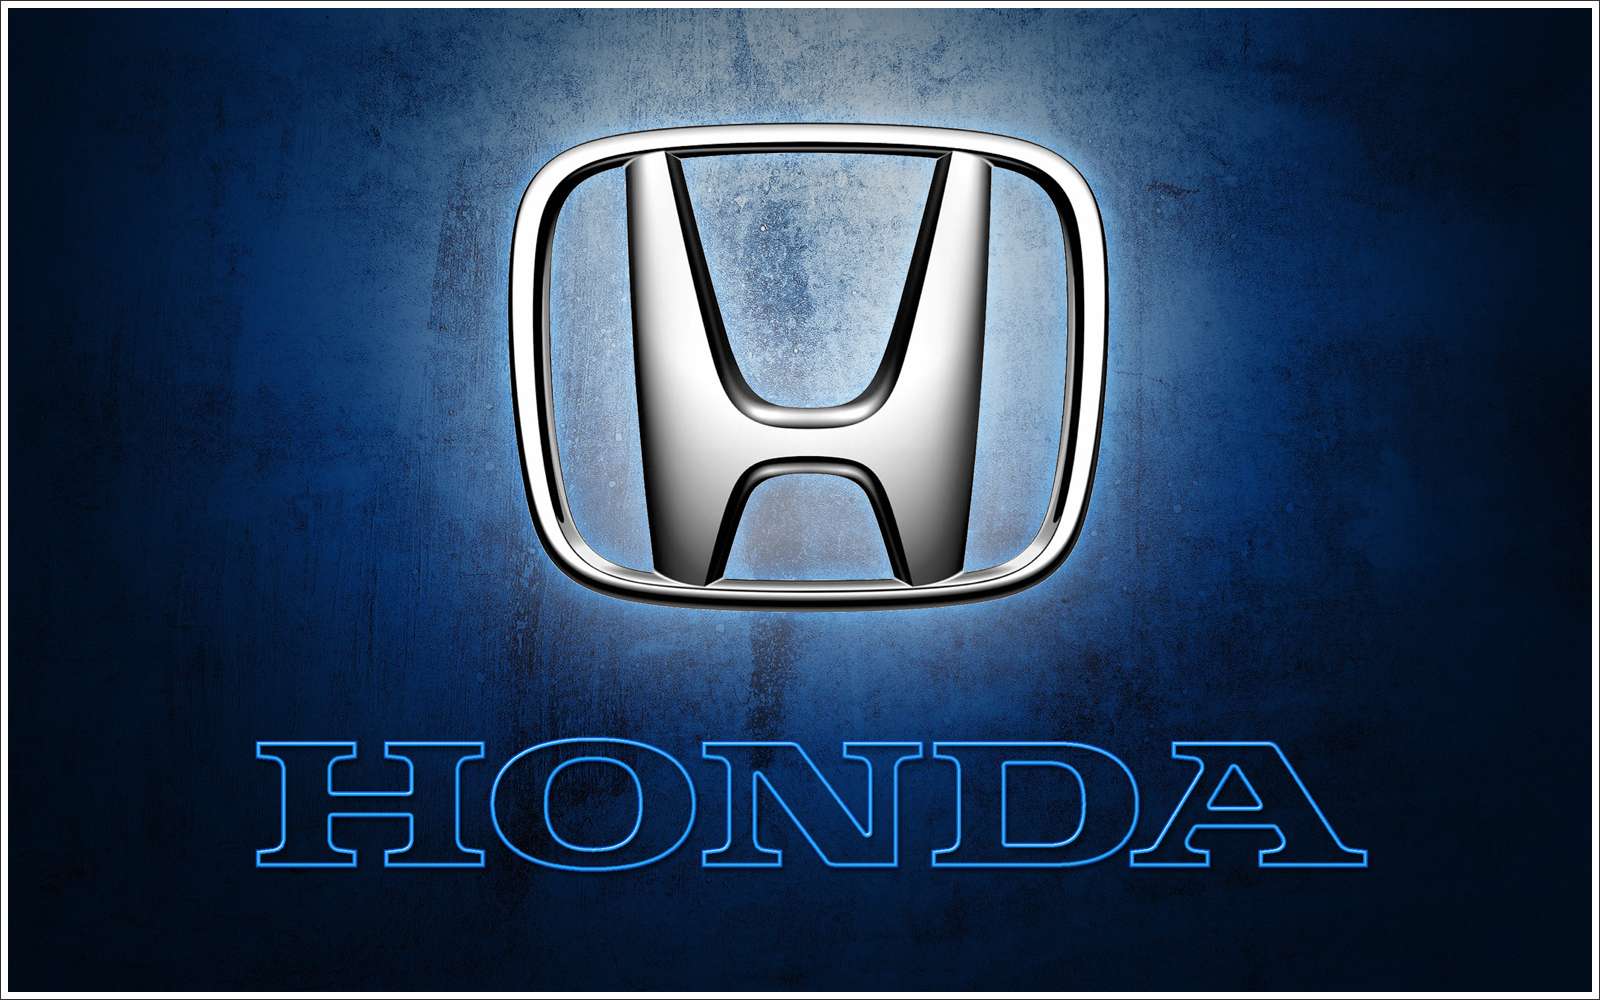 Honda Emblem Wallpaper